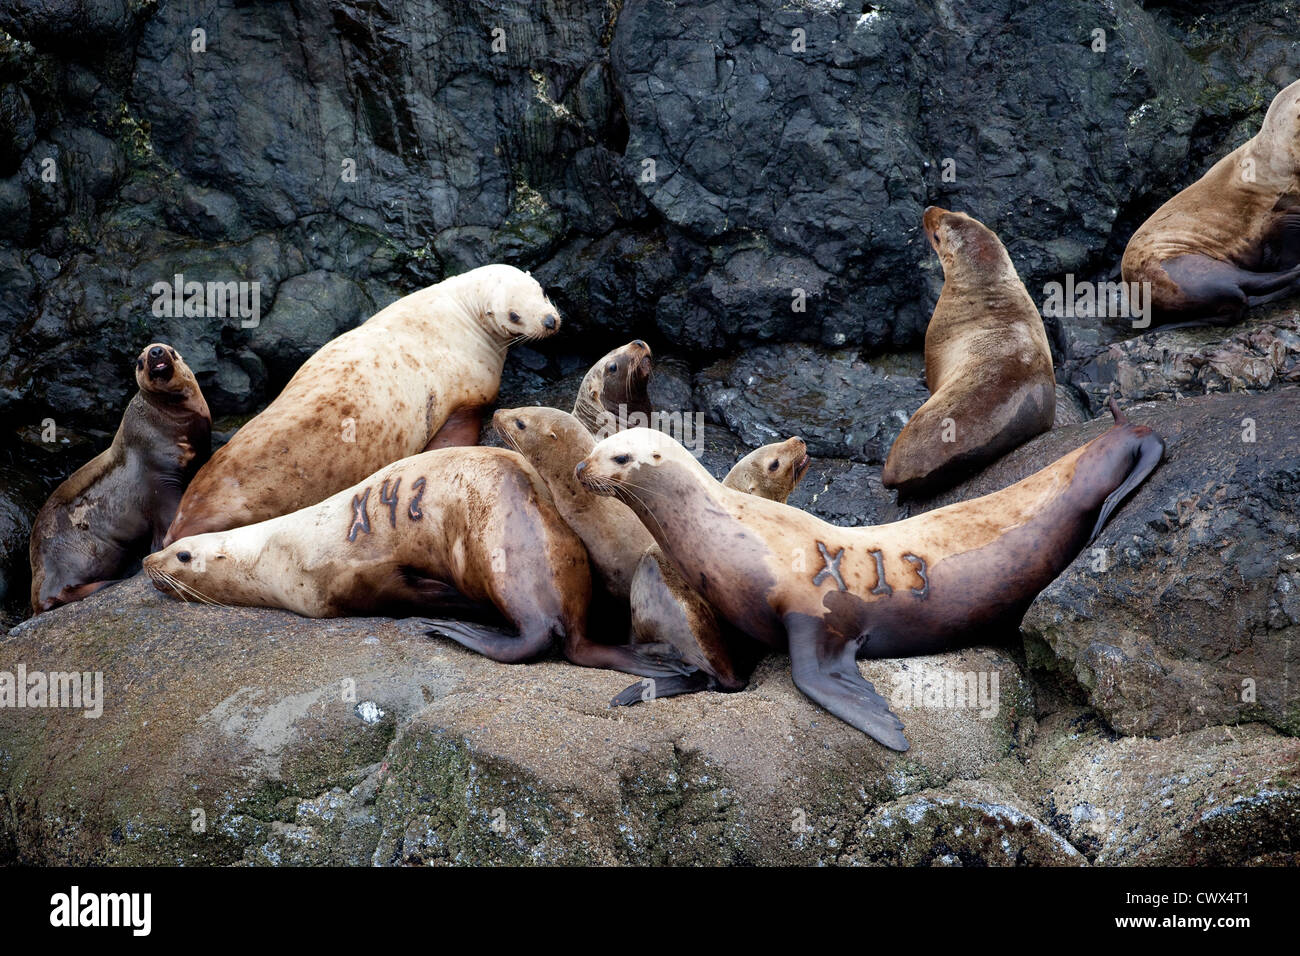 Stellar sea lions (Eumetopias jubatus) hauled out on rocks off the coast of Alaska. - Stock Image